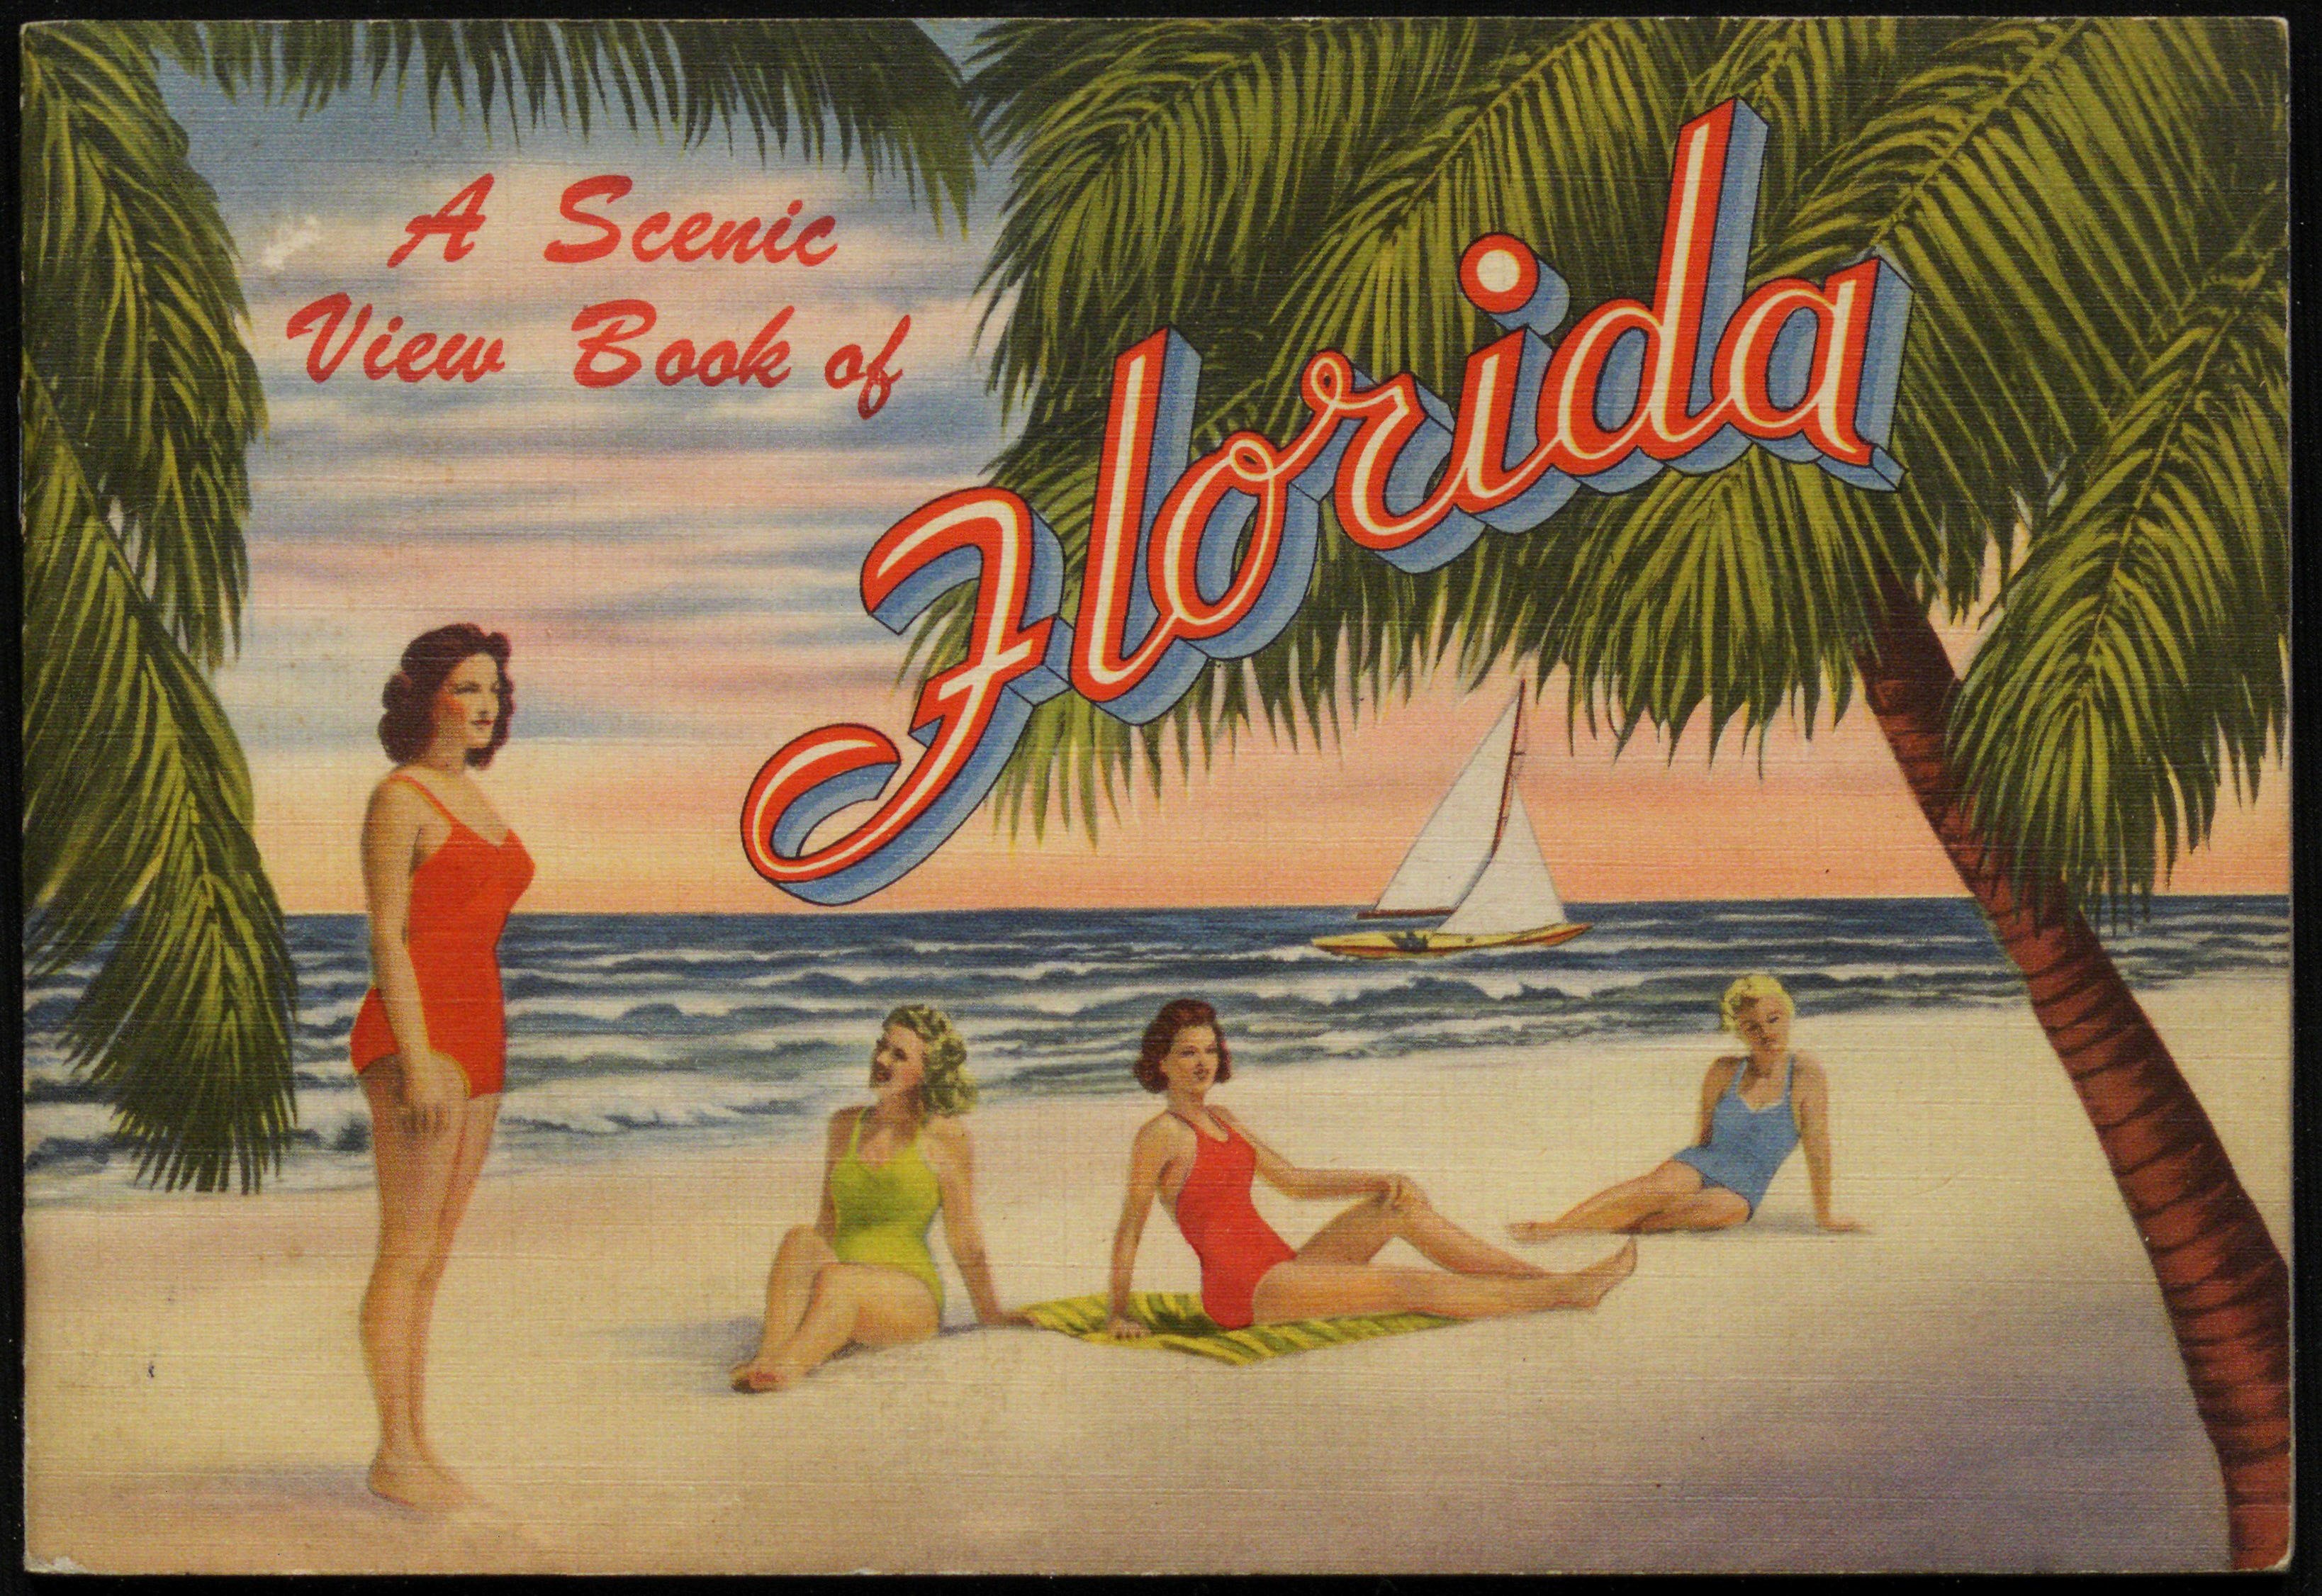 A Scenic View Book of Florida. Copyright University of Florida, George A. Smathers Libraries